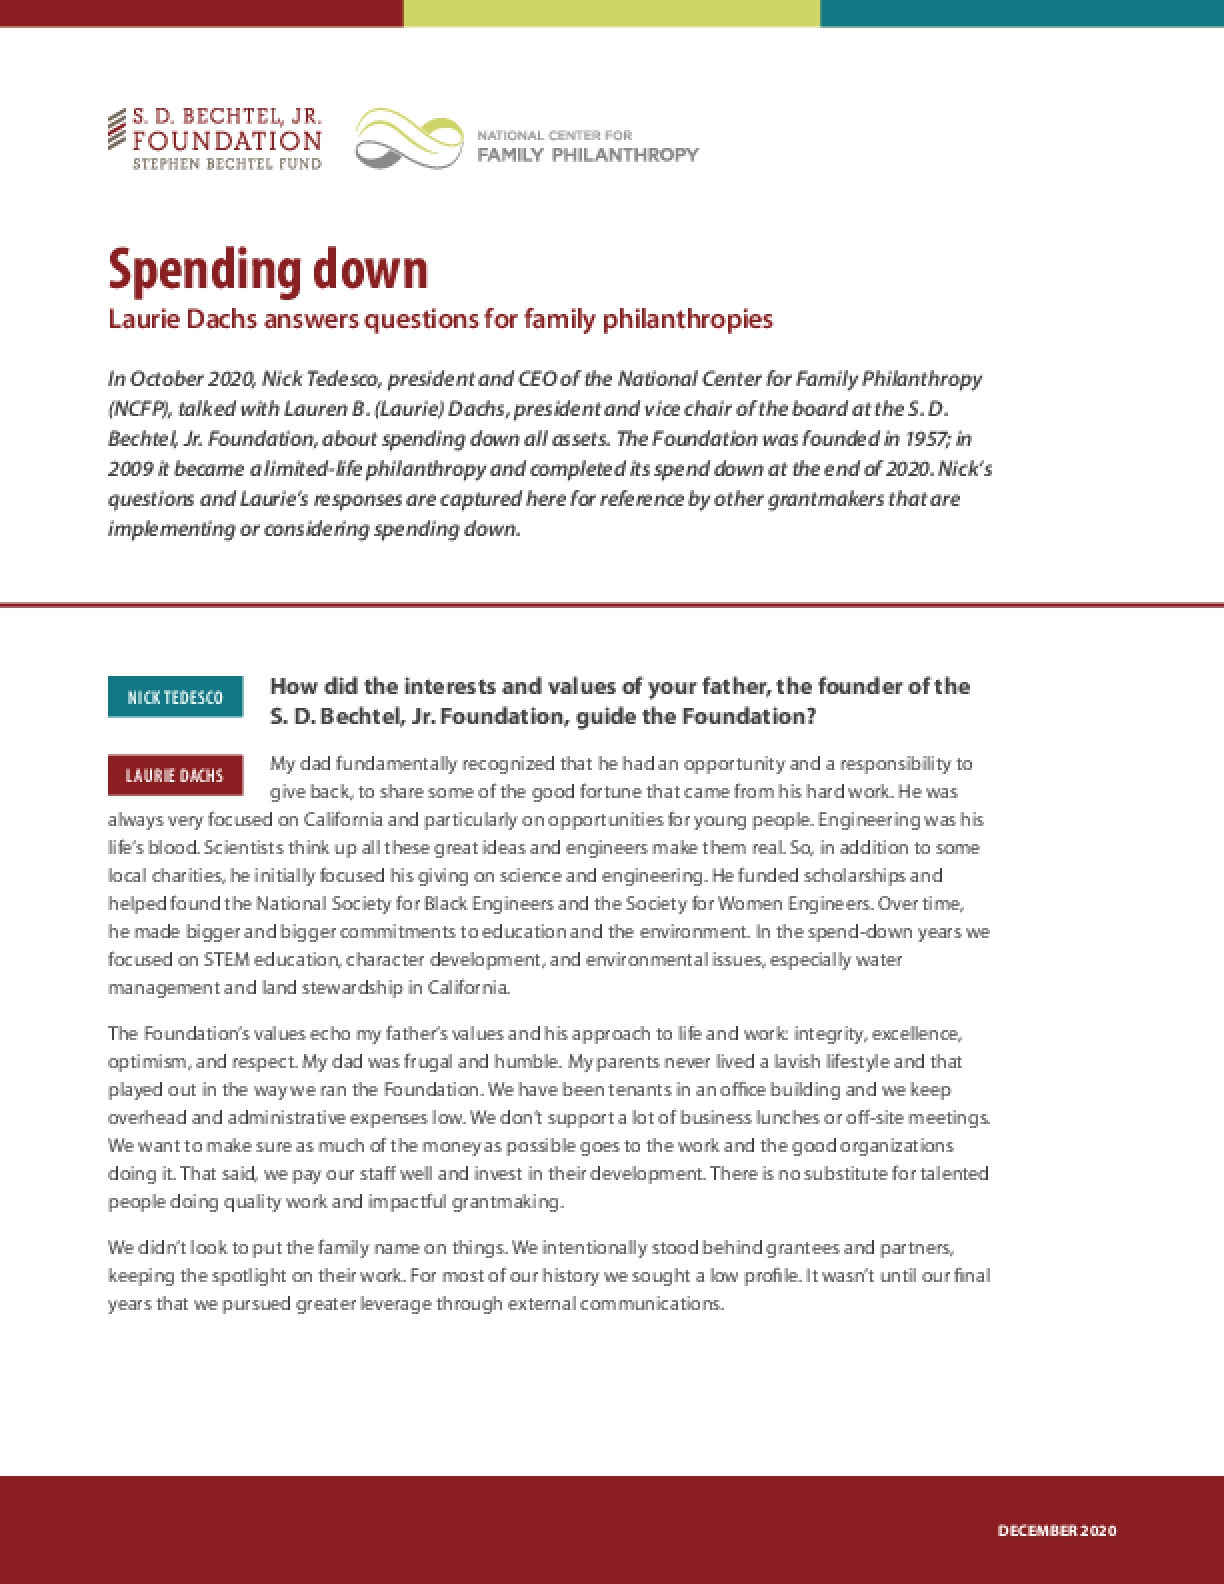 Spending Down: Laurie Dachs Answers Questions for Family Philanthropies